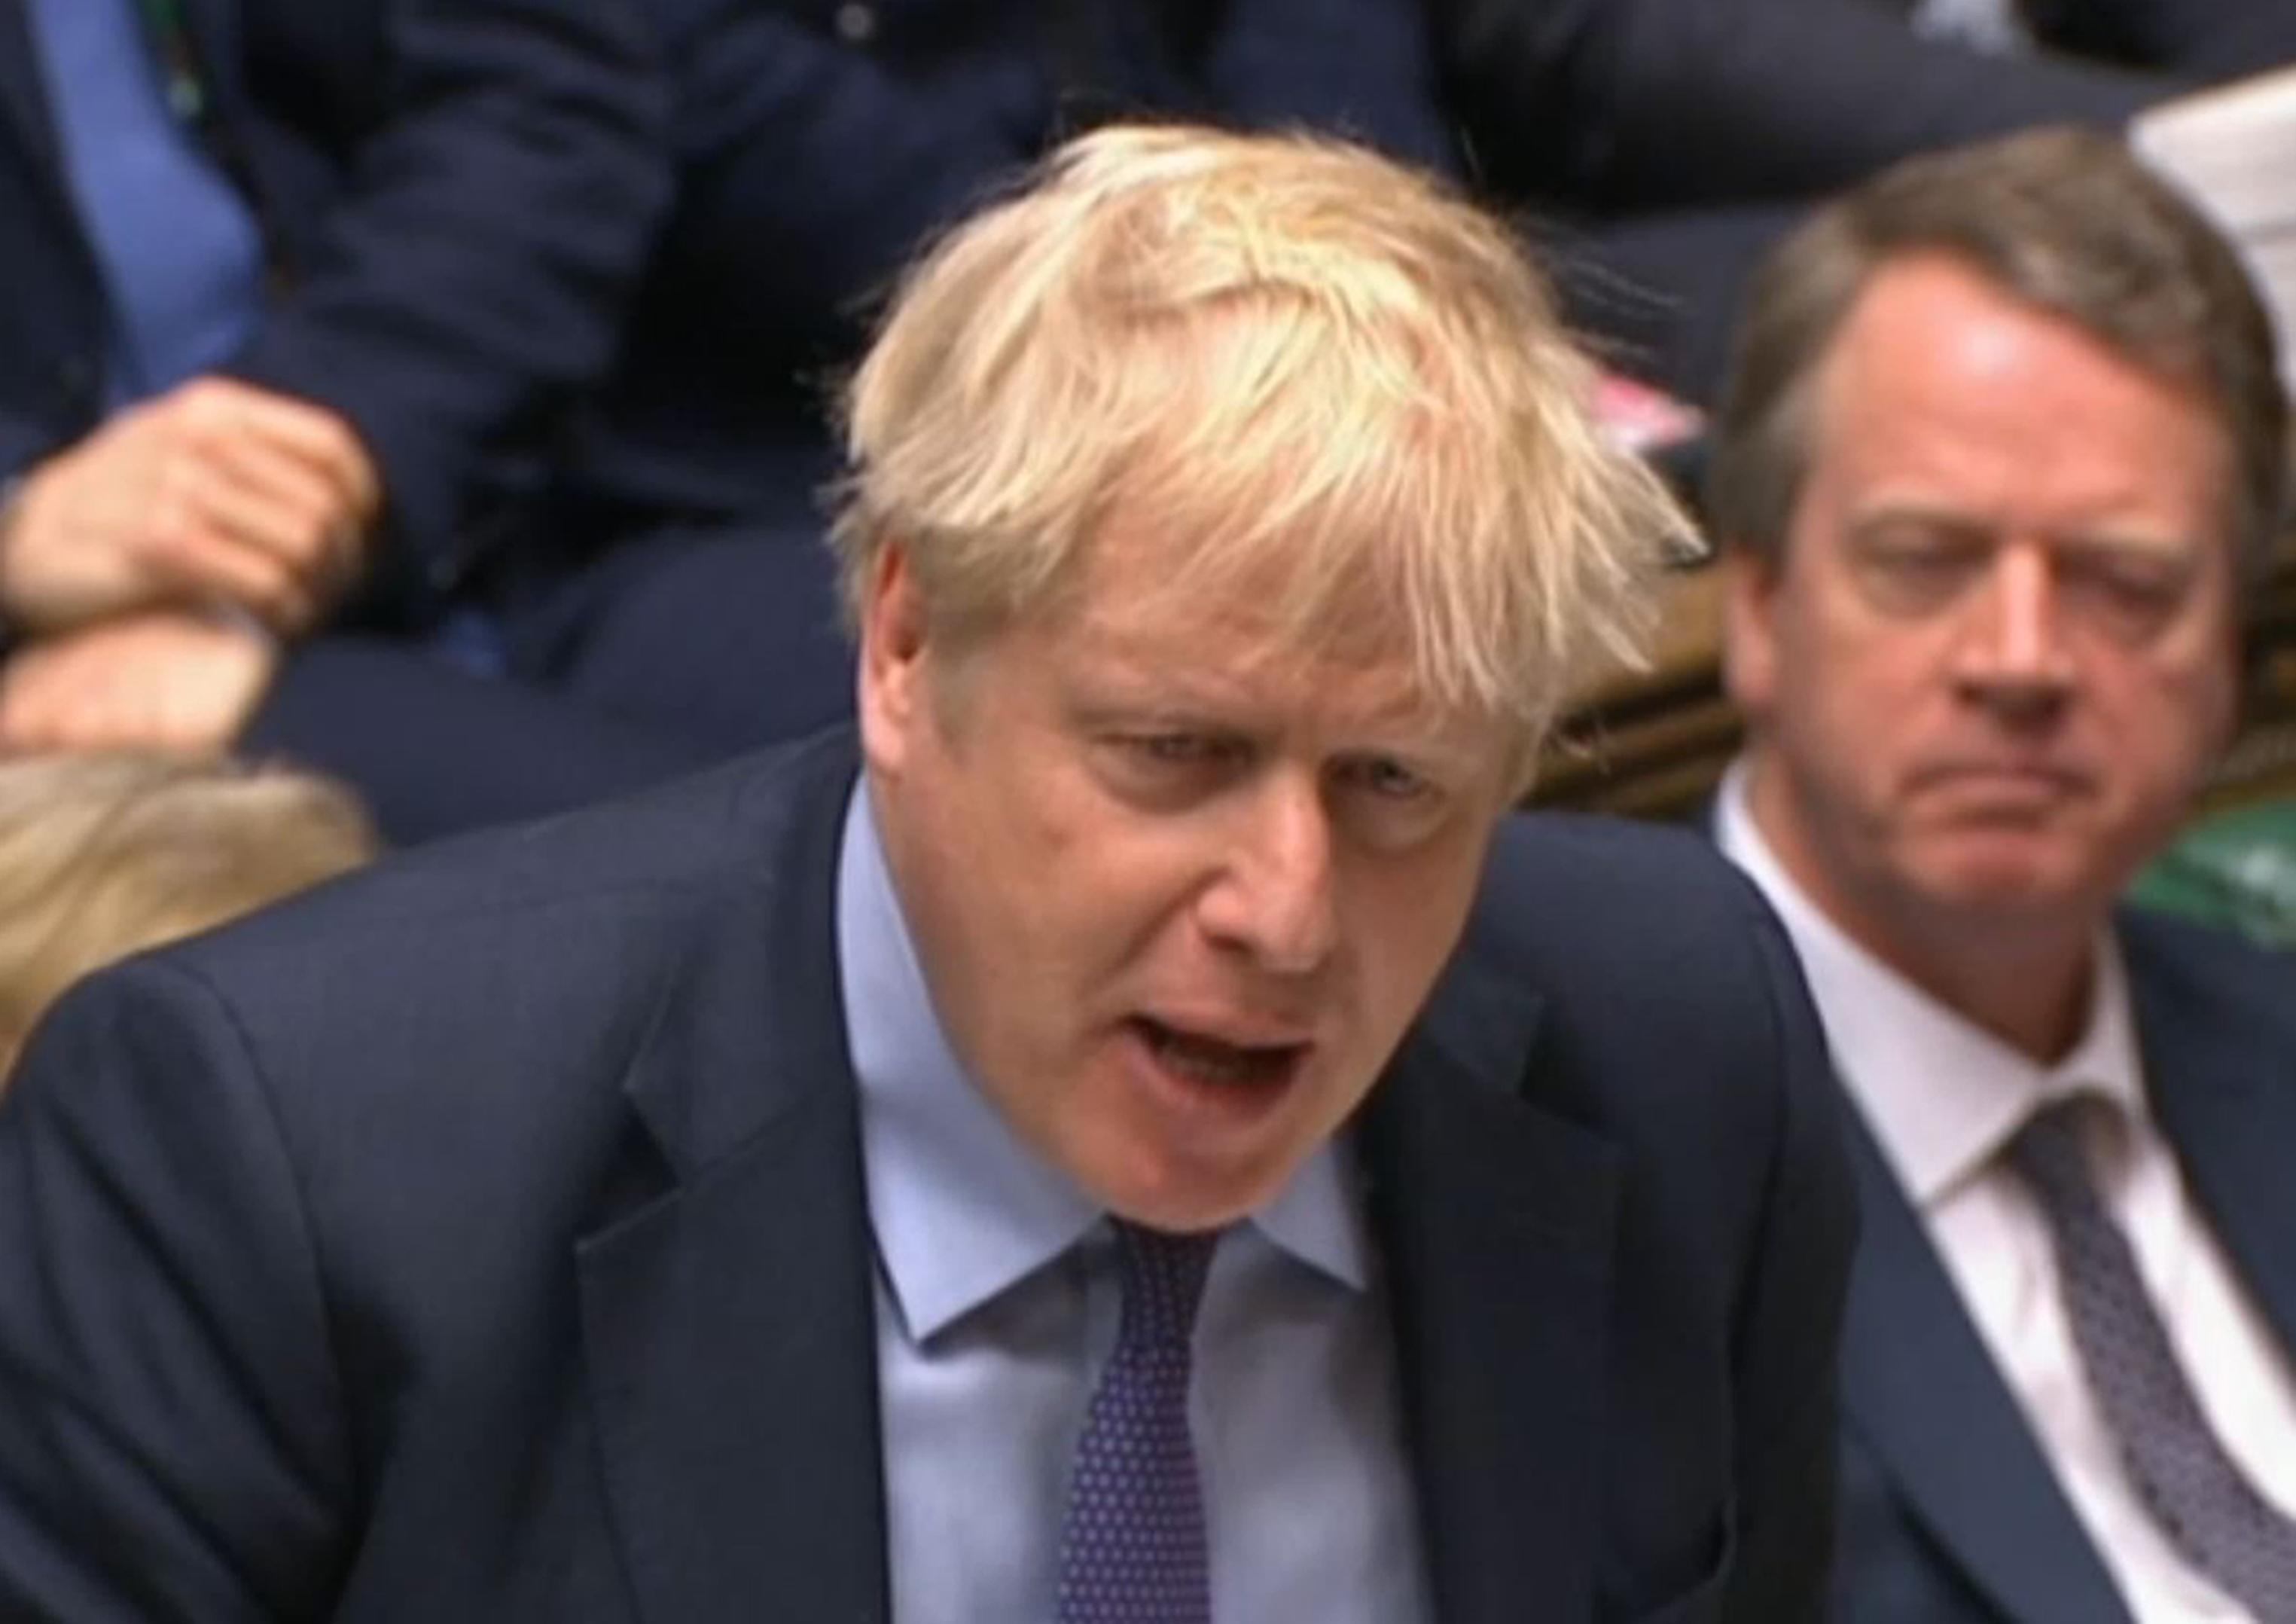 Prime Minister Boris Johnson speaks during Prime Minister's Questions in the House of Commons, London. (Photo by House of Commons/PA Images via Getty Images)